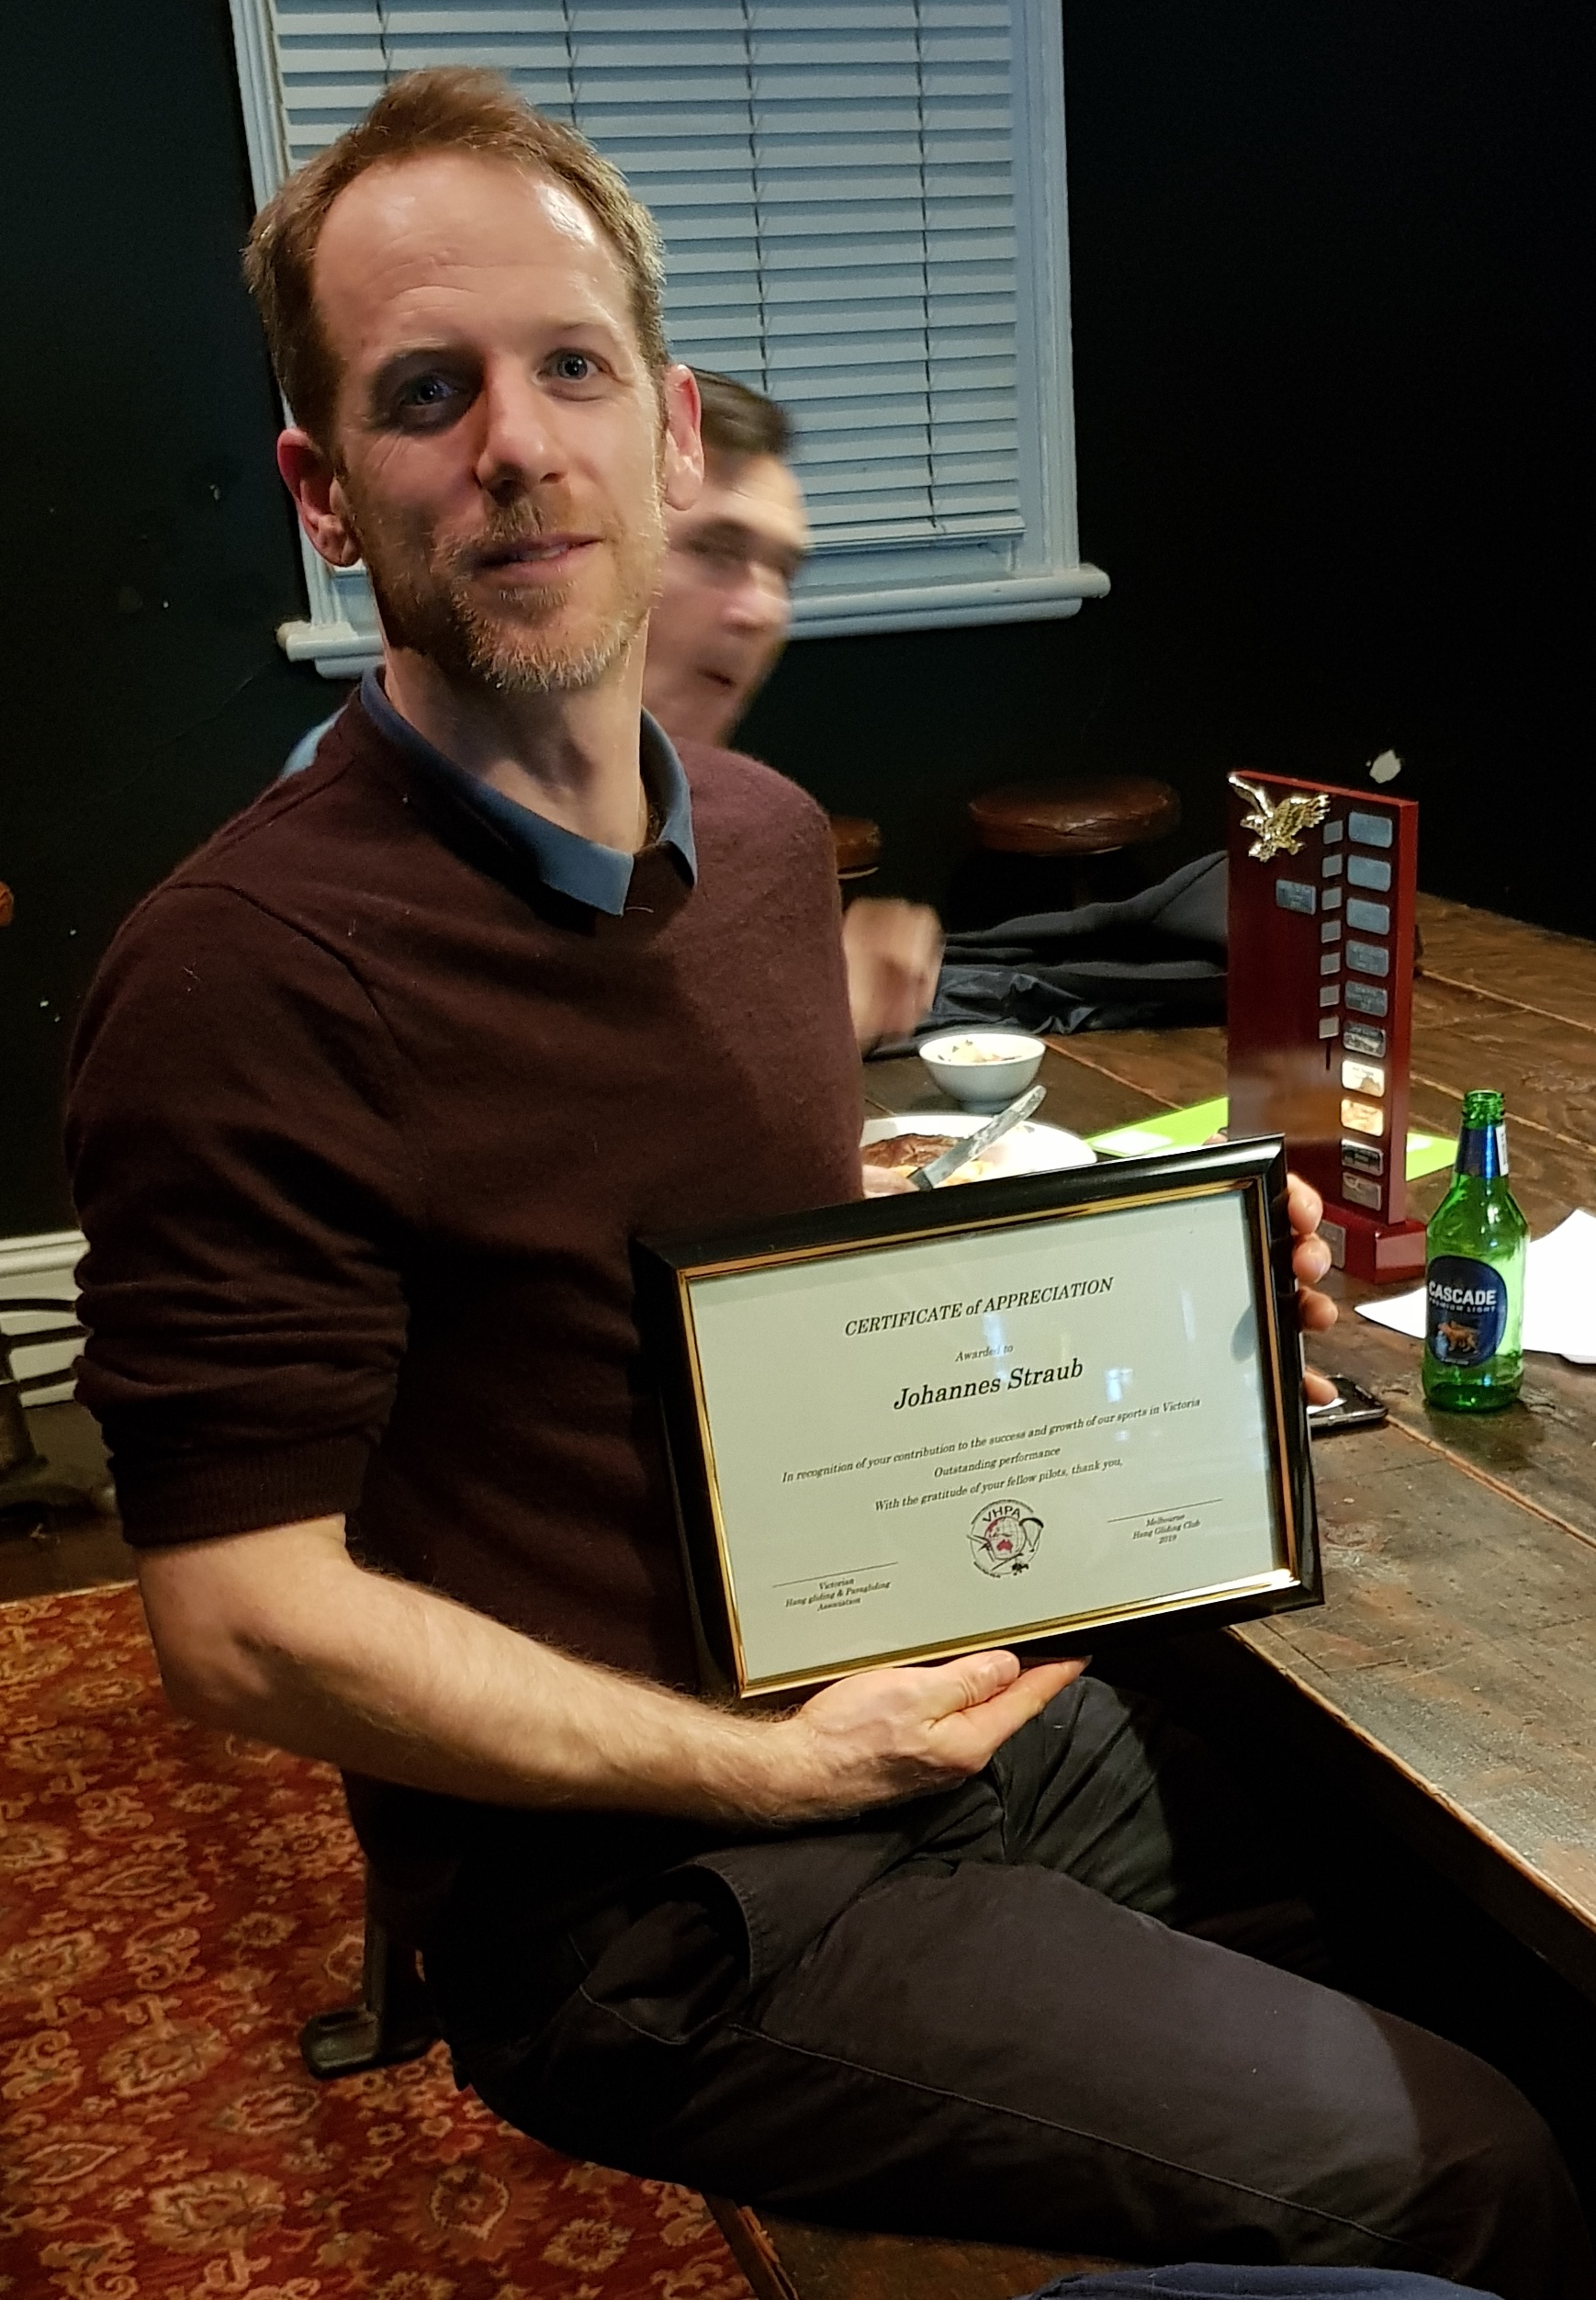 Johannes Straub receives an award from VHPA